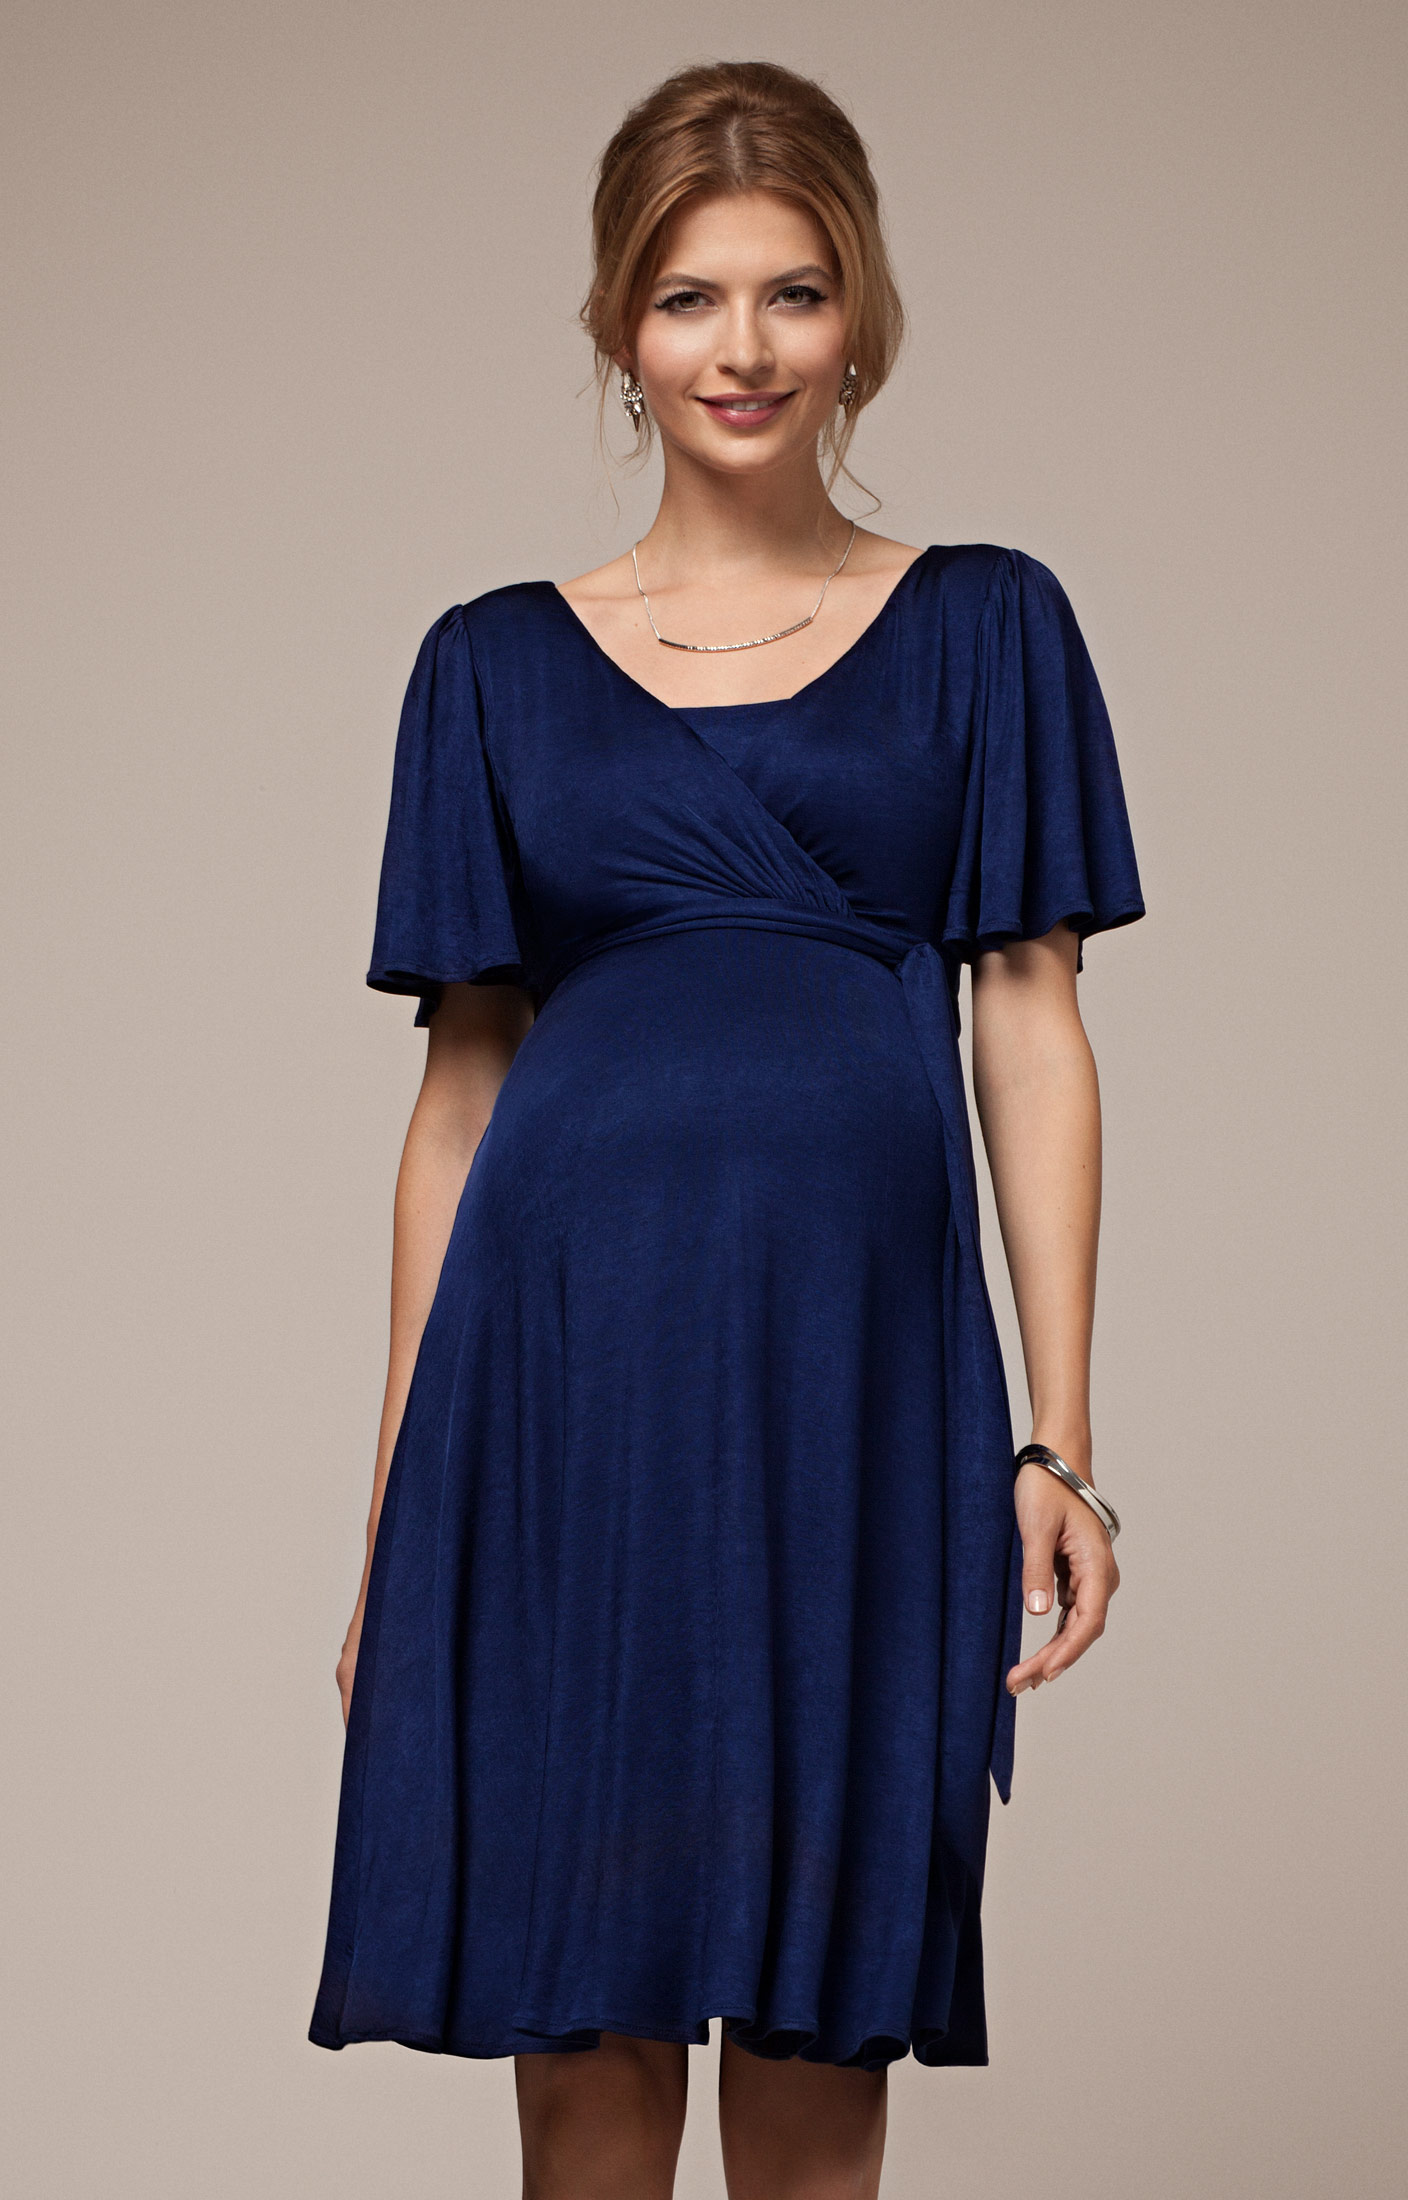 alicia nursing dress eclipse blue by tiffany rose KPTDRKF